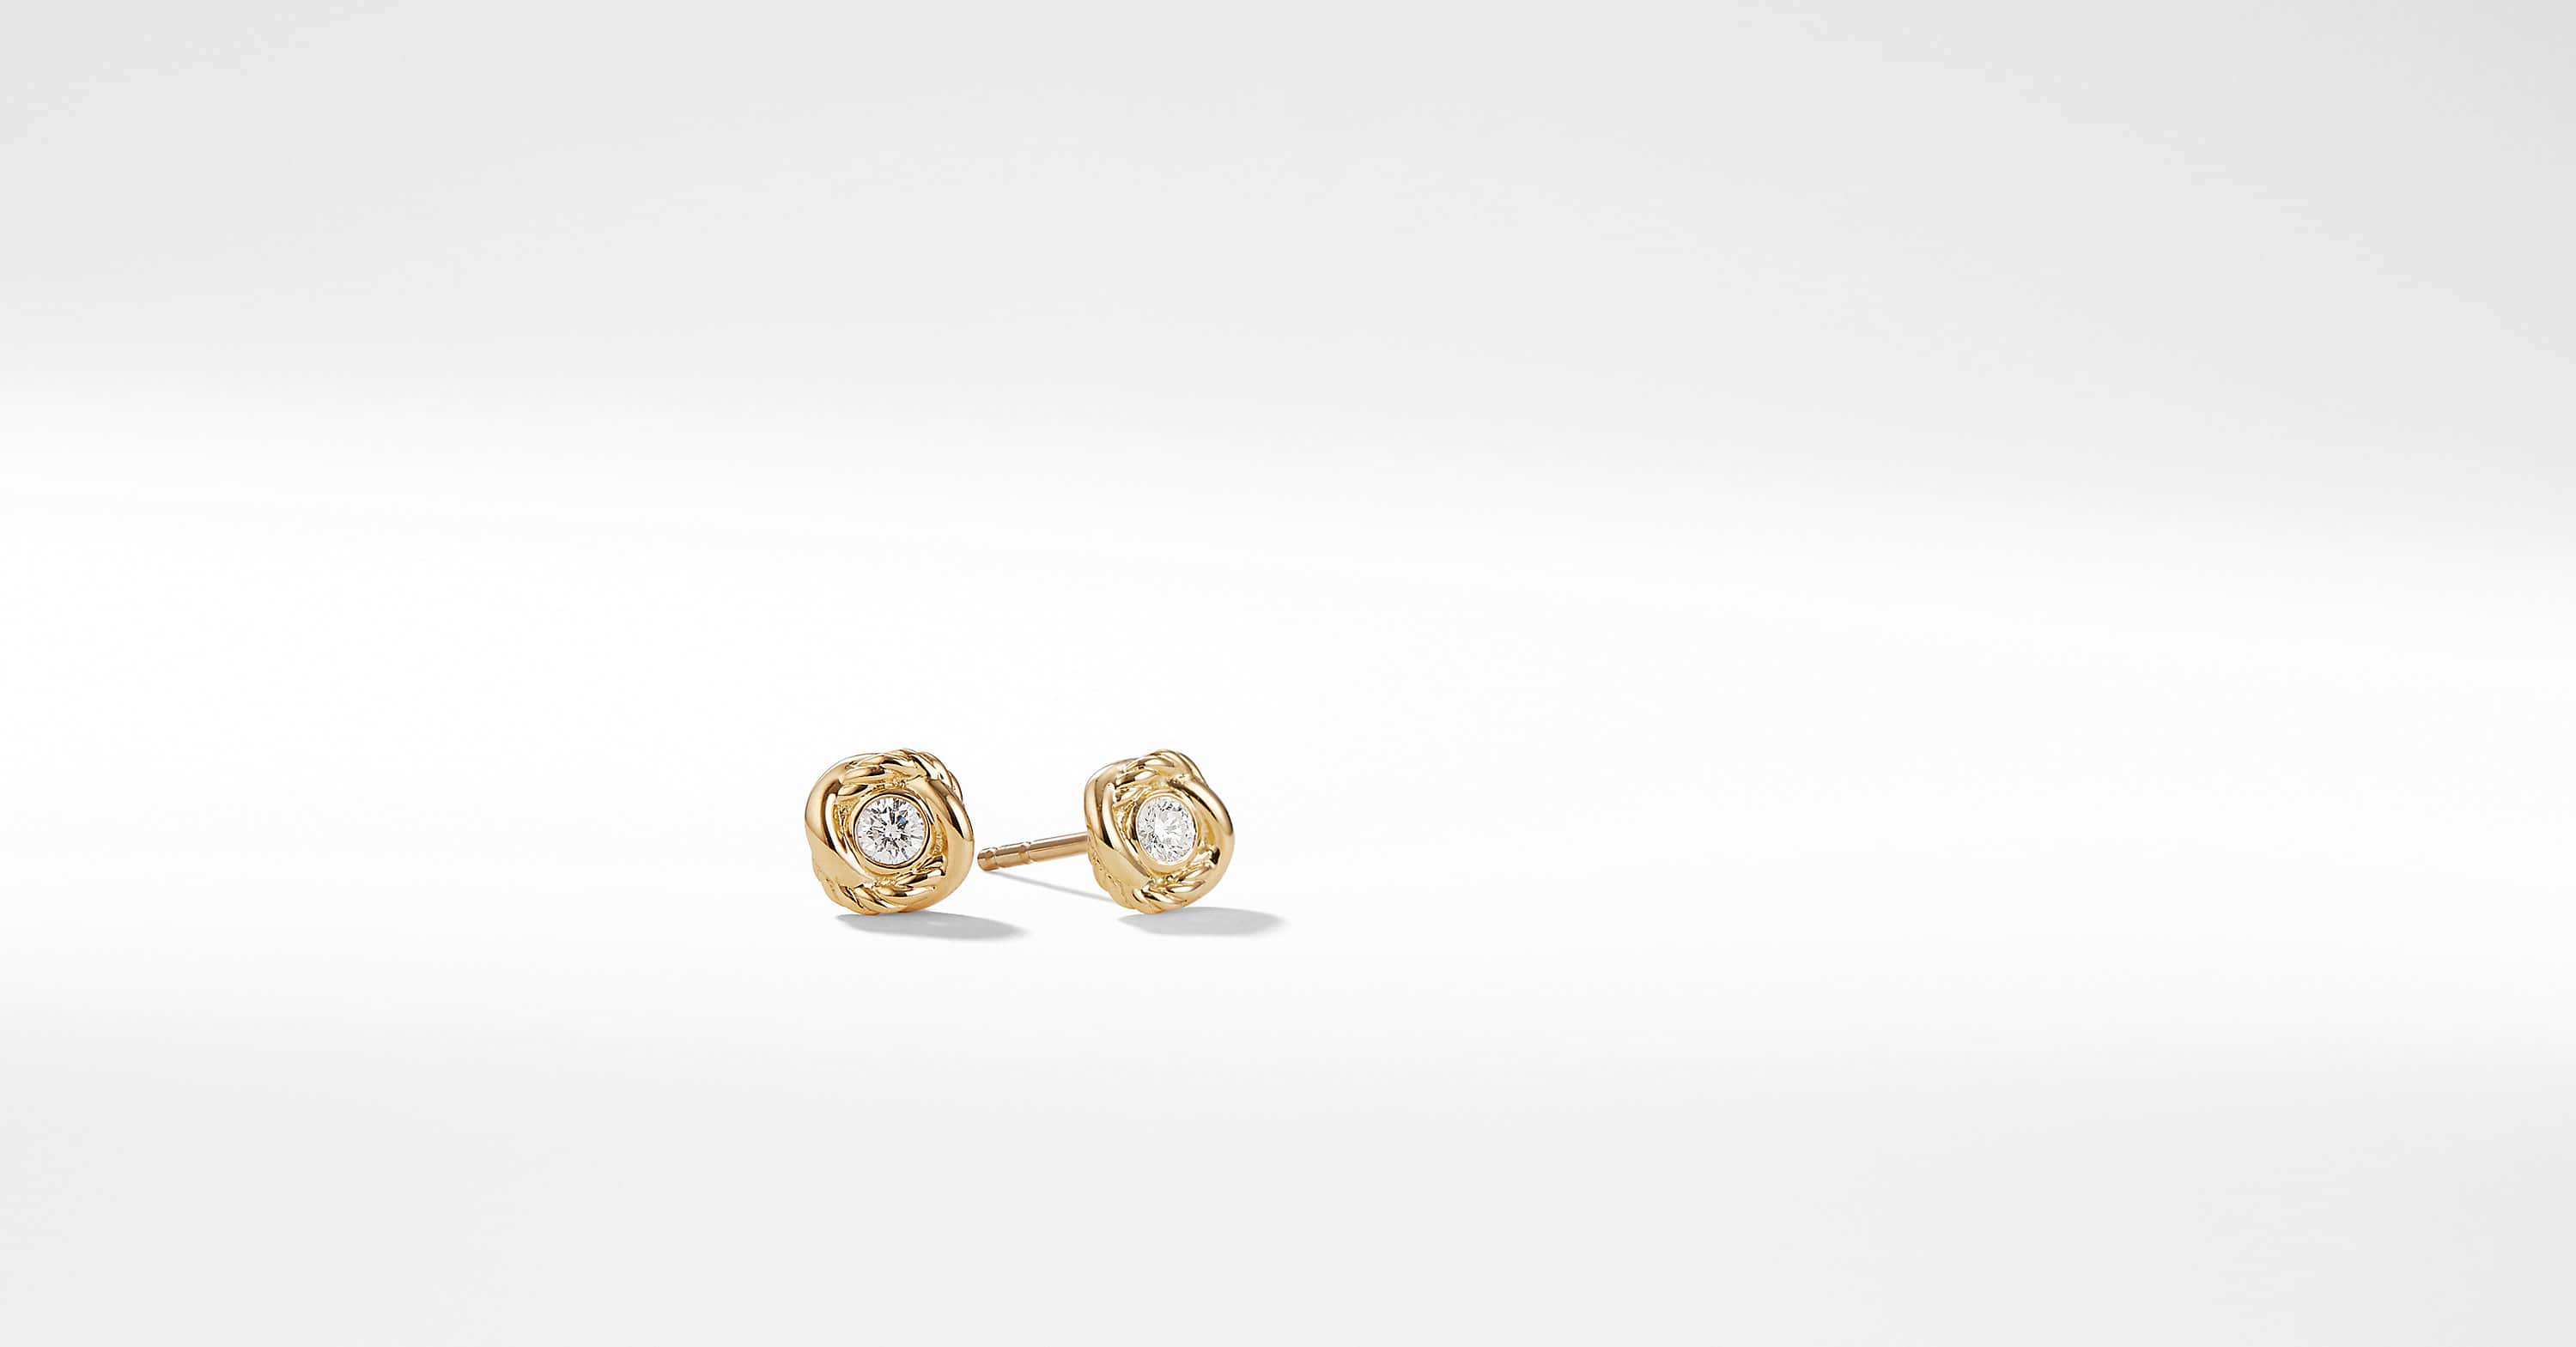 Infinity Earrings with Diamonds in 18K Gold